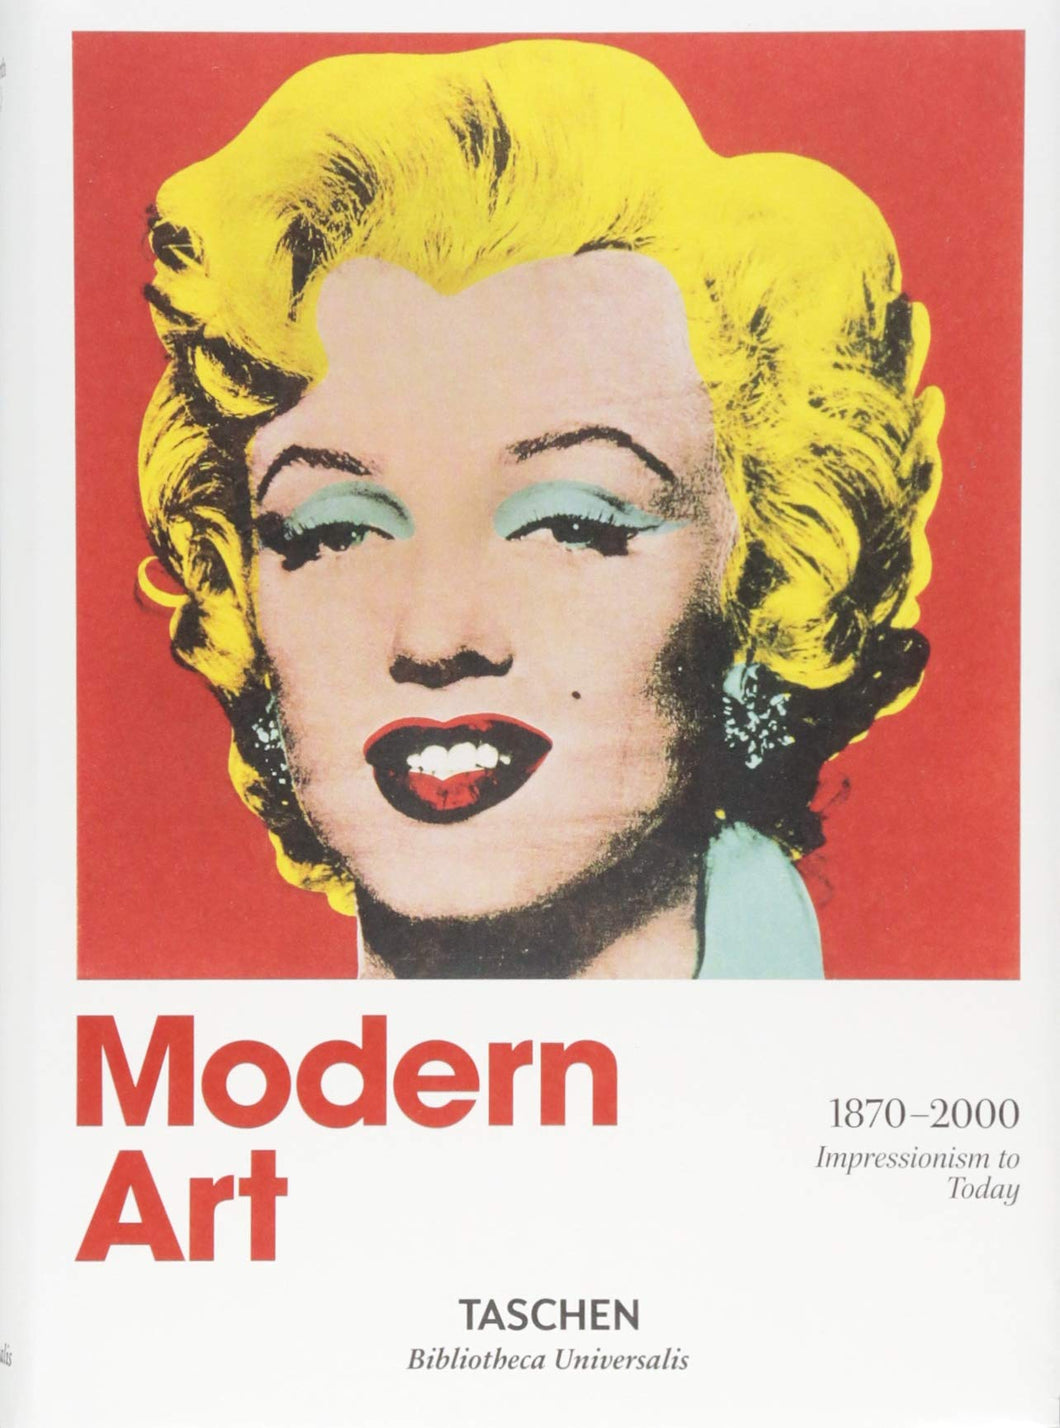 TASCHEN- BOOKS: Modern Art. A History from Impressionism to Today